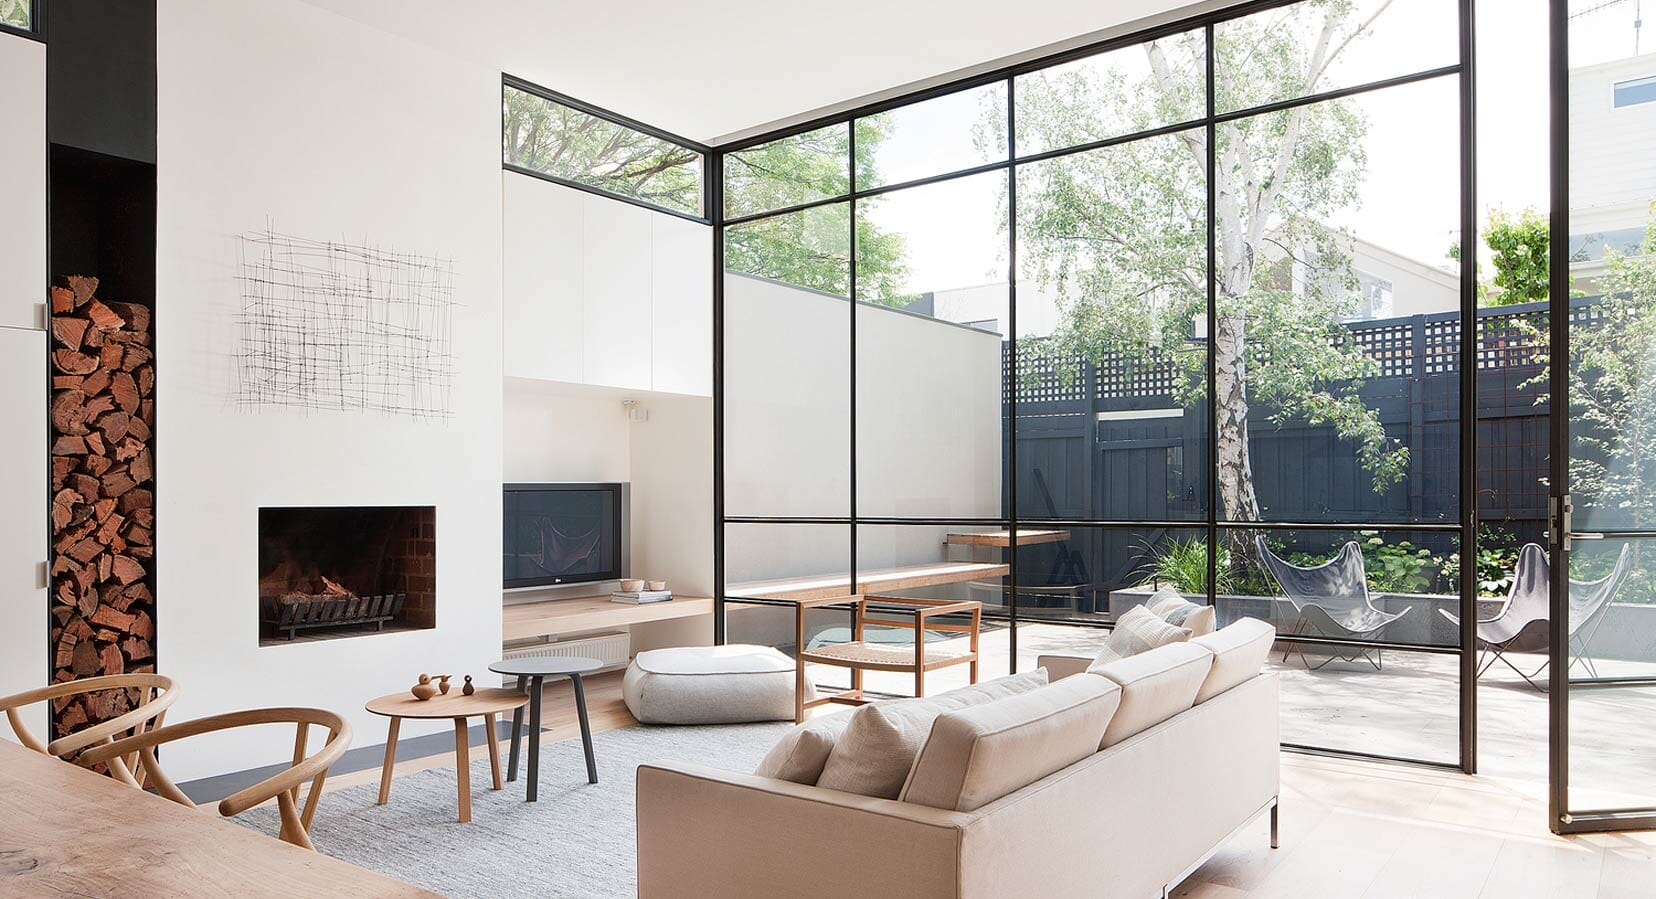 Armadale House by Robson Rak Architects & Made by Cohen